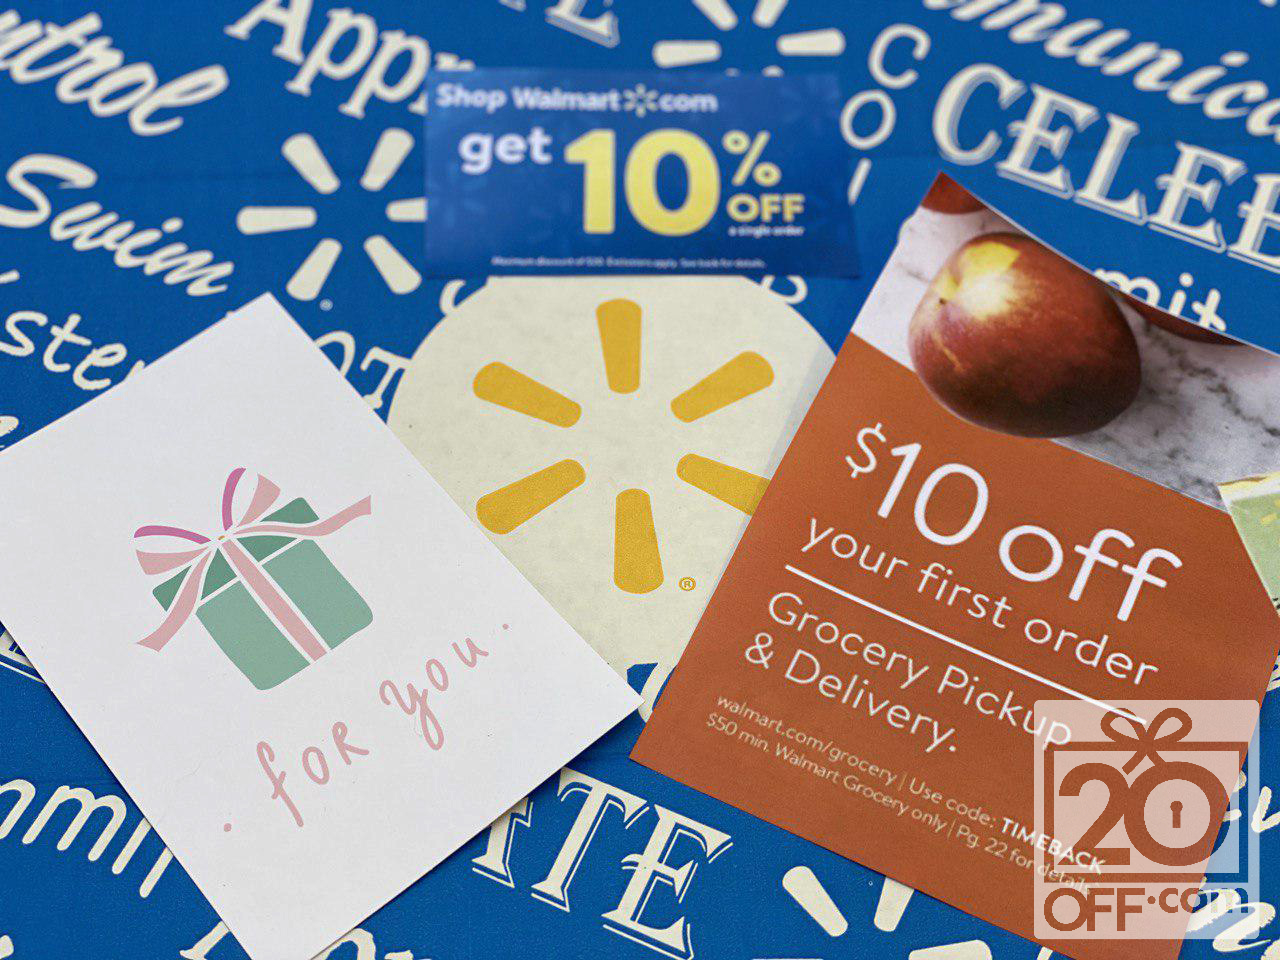 Walmart $10 OFF February Coupon Code